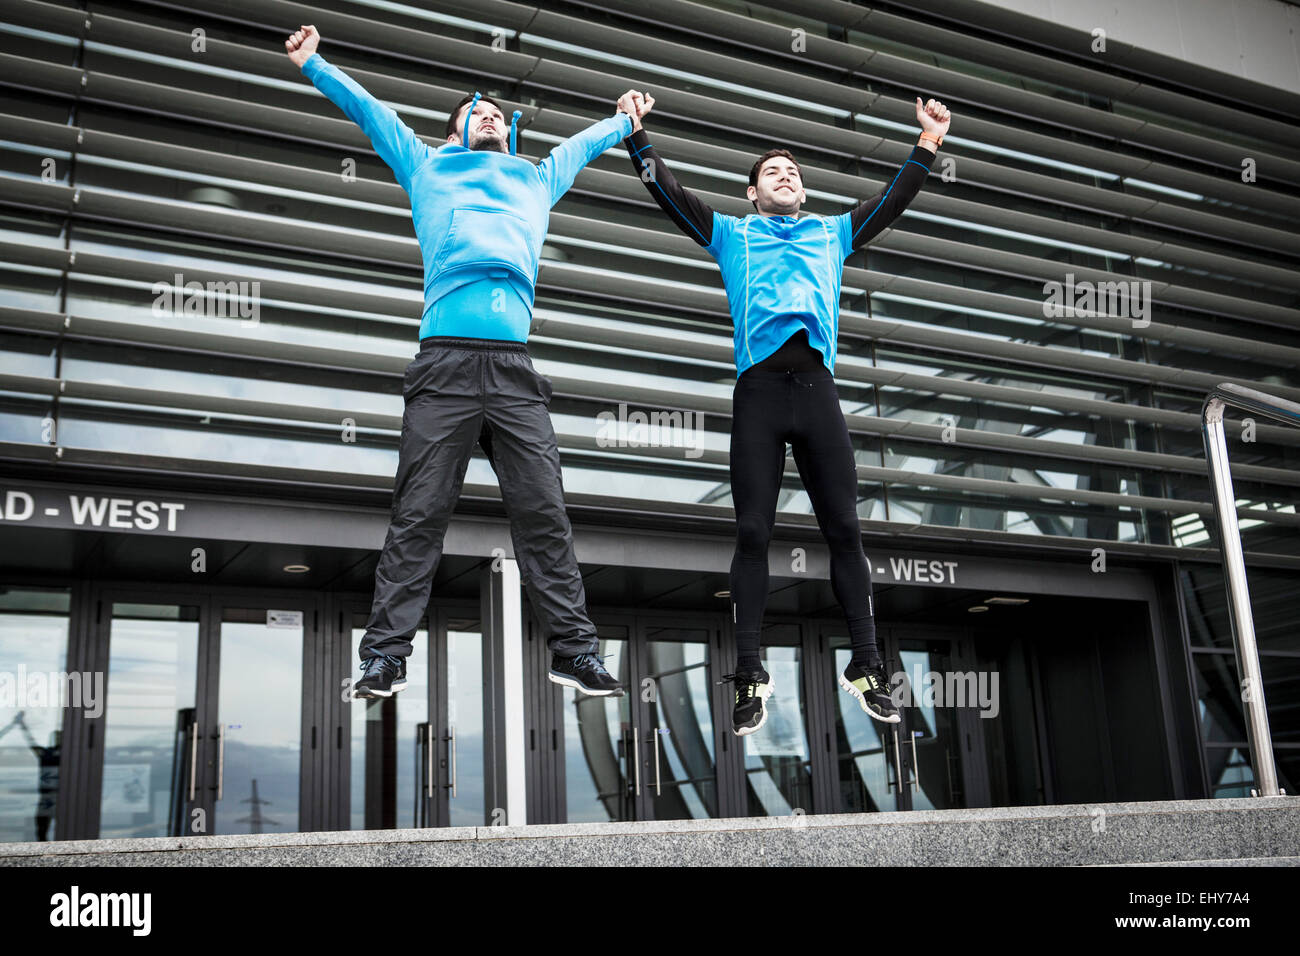 Male runners jumping side by side in city - Stock Image